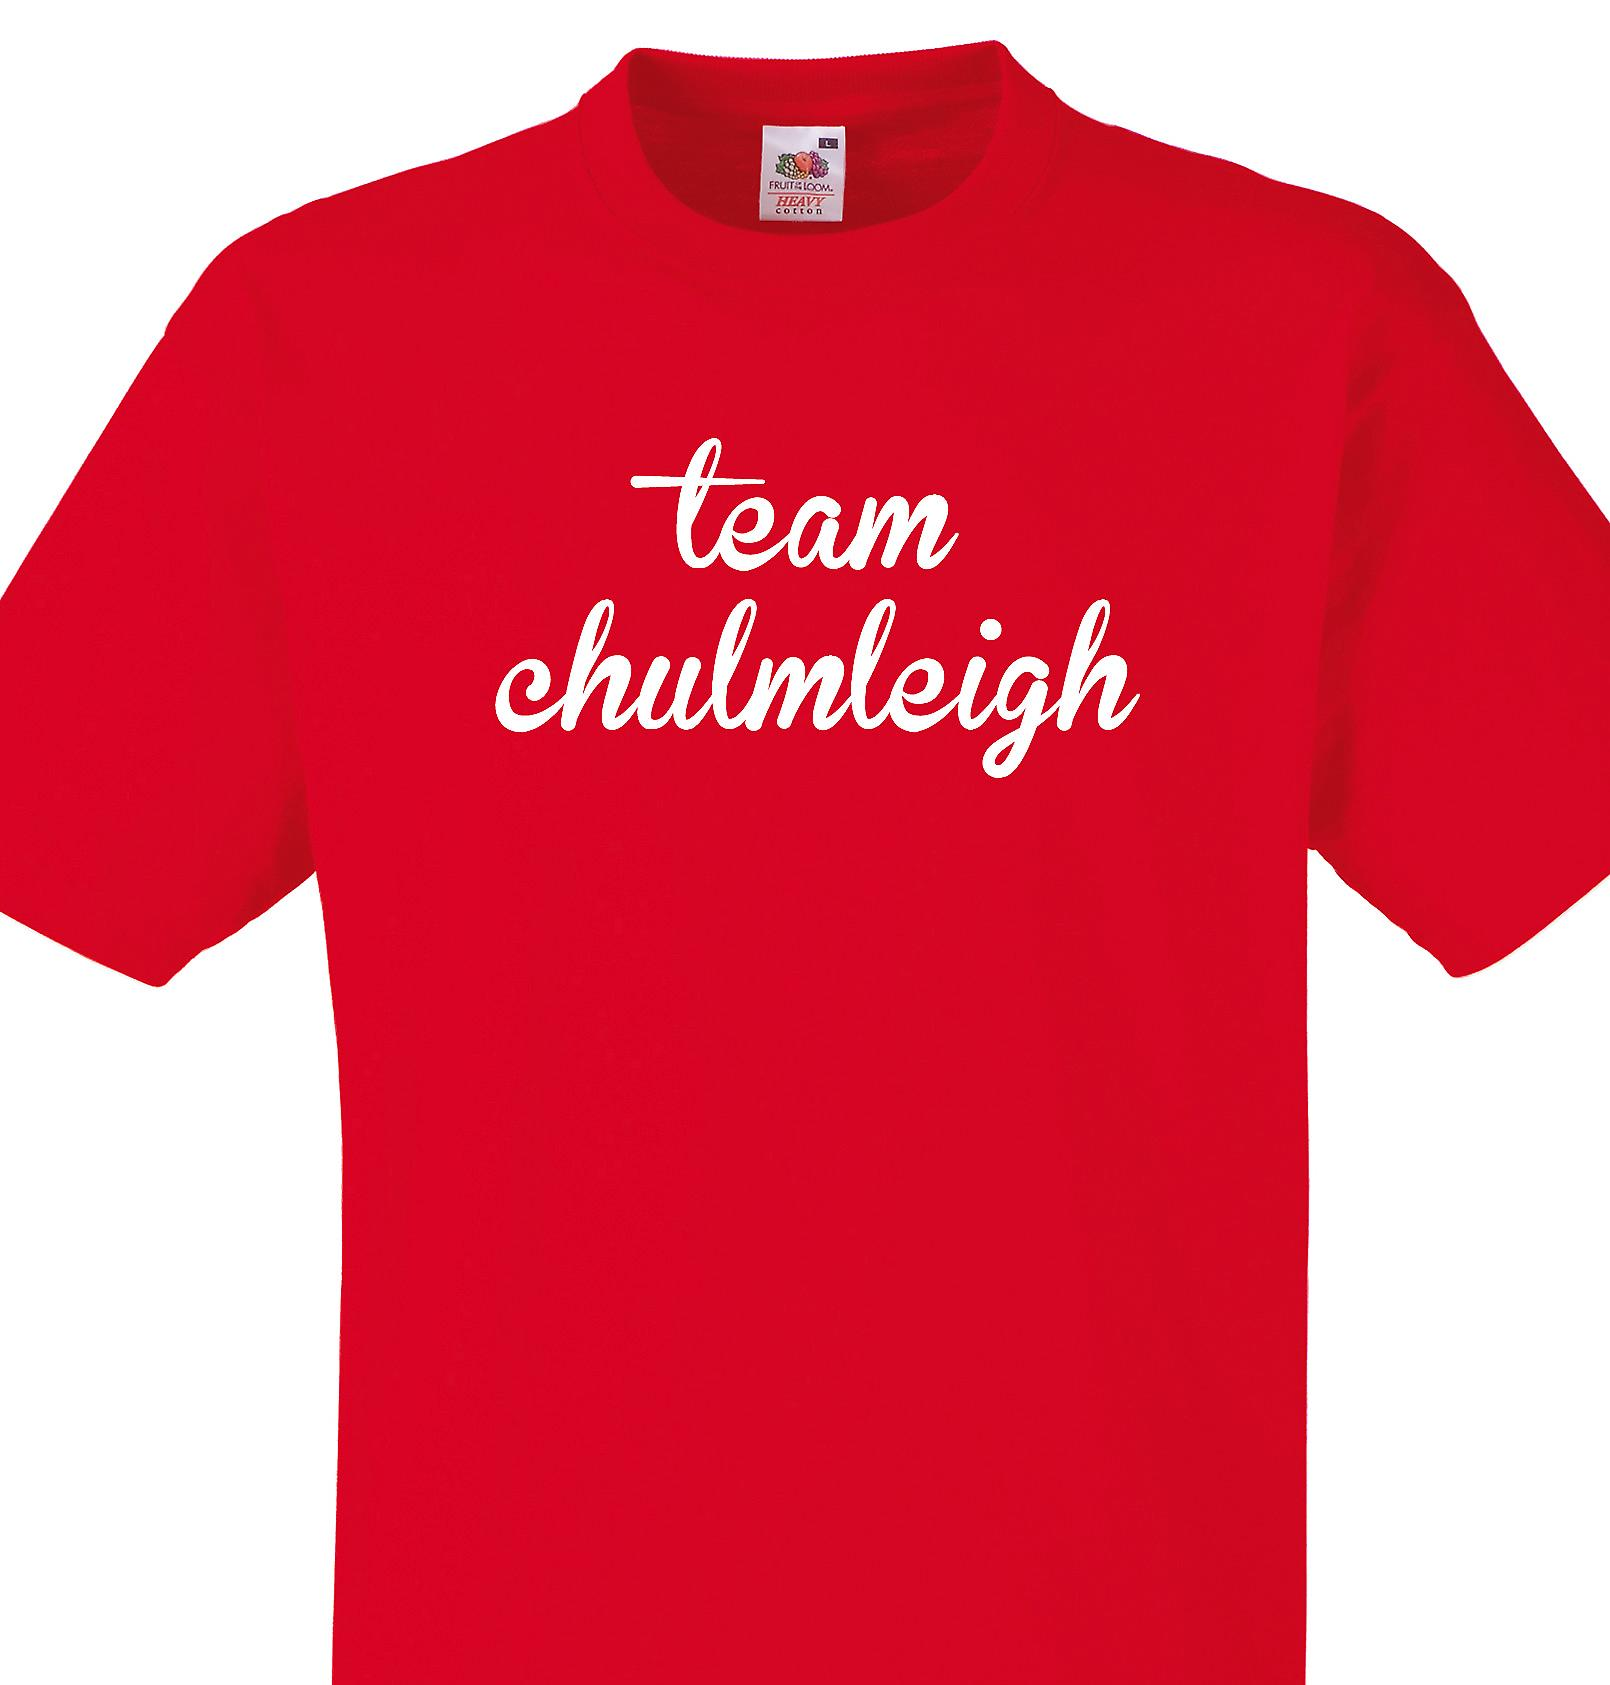 Team Chulmleigh Red T shirt